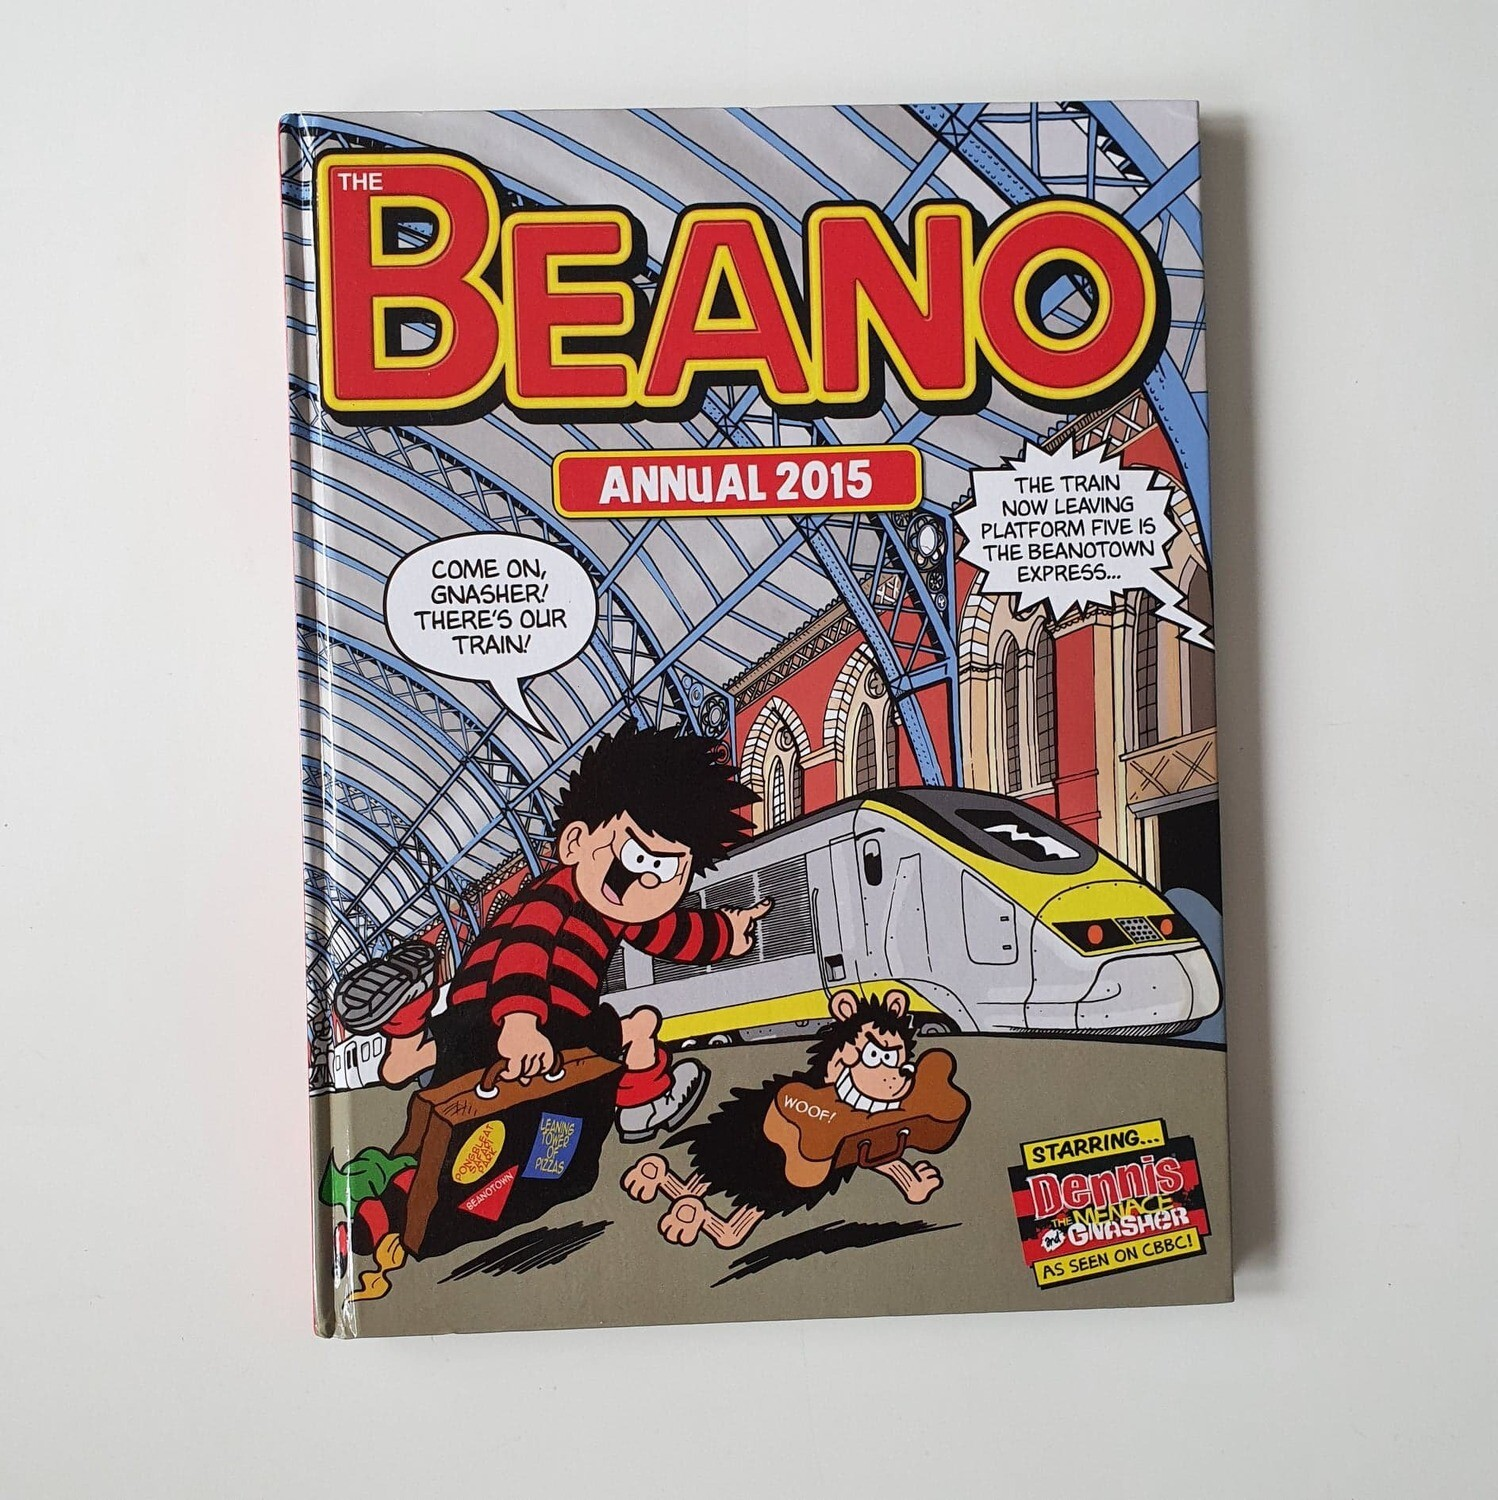 The Beano - Dennis the Menace - choose from a variety of covers